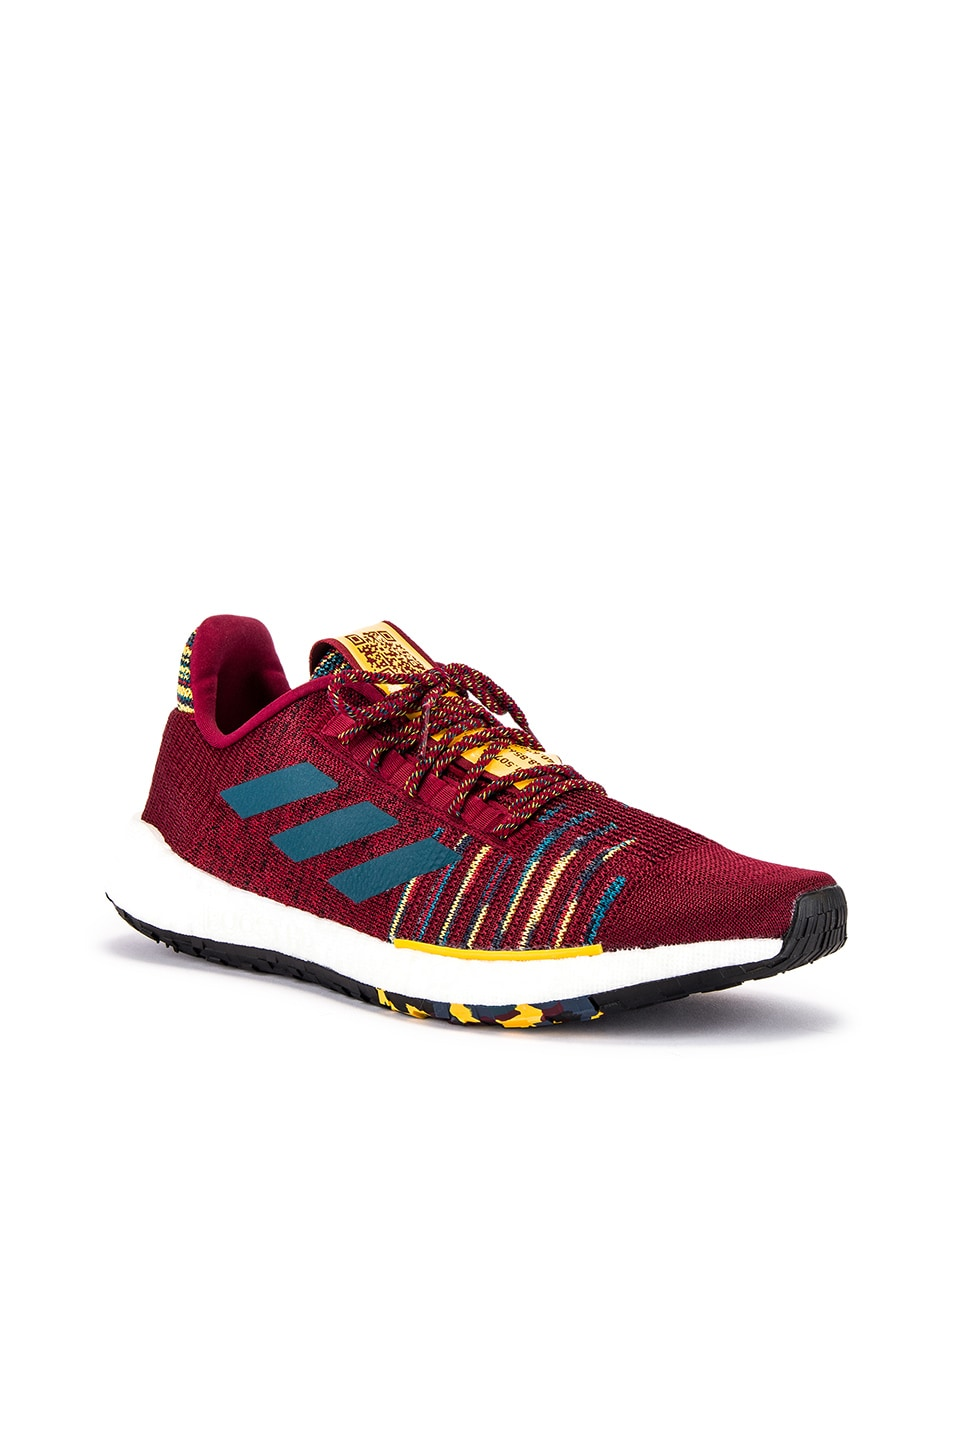 Image 2 of adidas by MISSONI Pulseboost HD in Collegiate Burgundy & Tech Mineral & Core Black